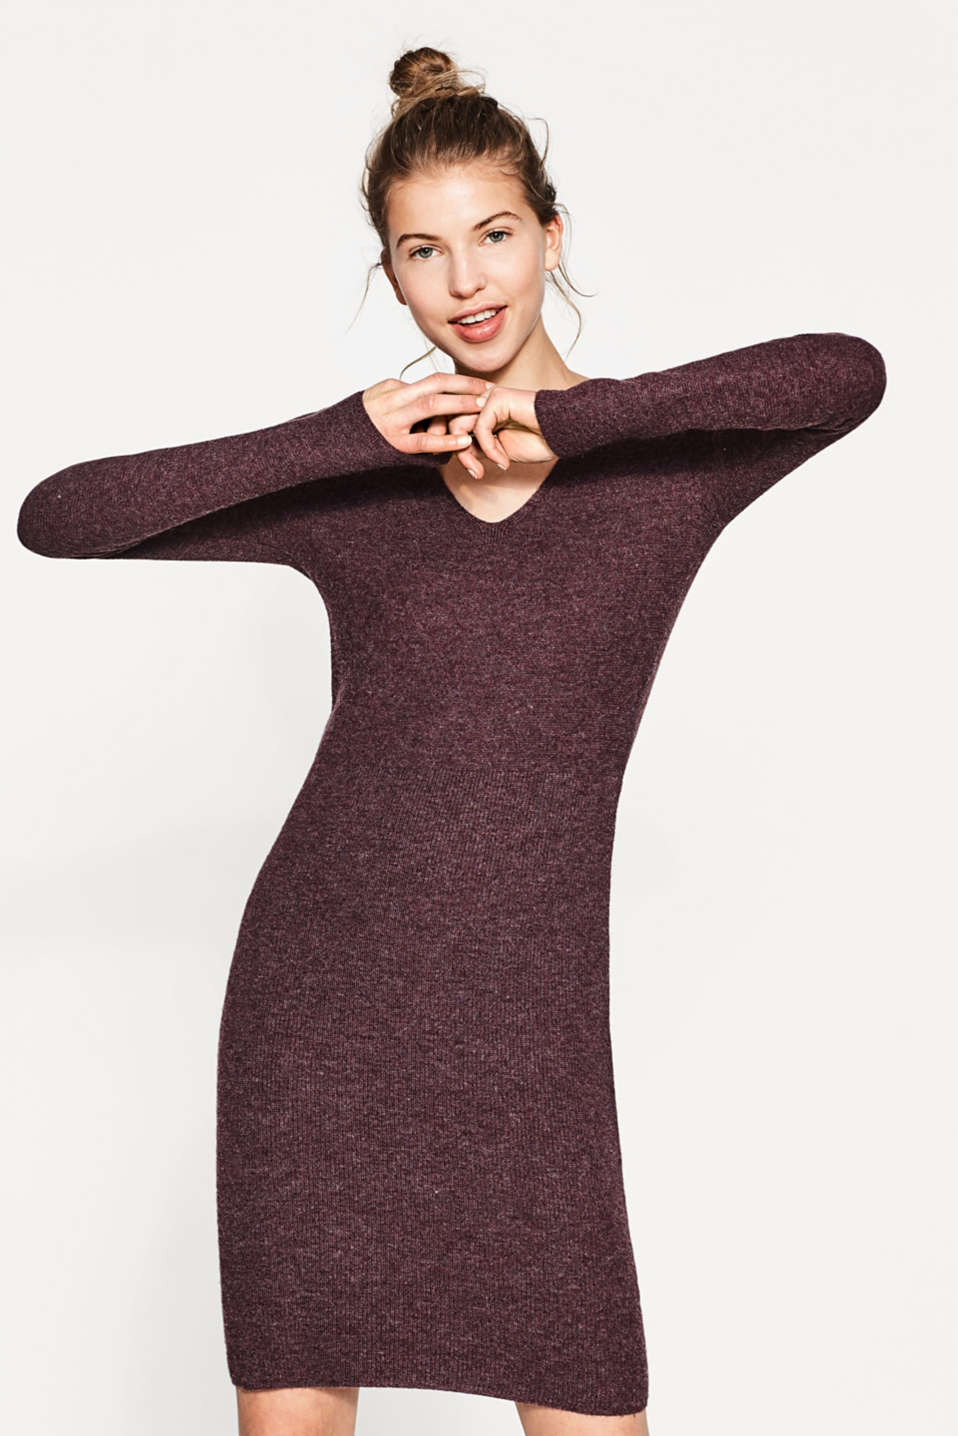 Esprit - Softes V-Neck-Strickkleid mit Struktur-Mix